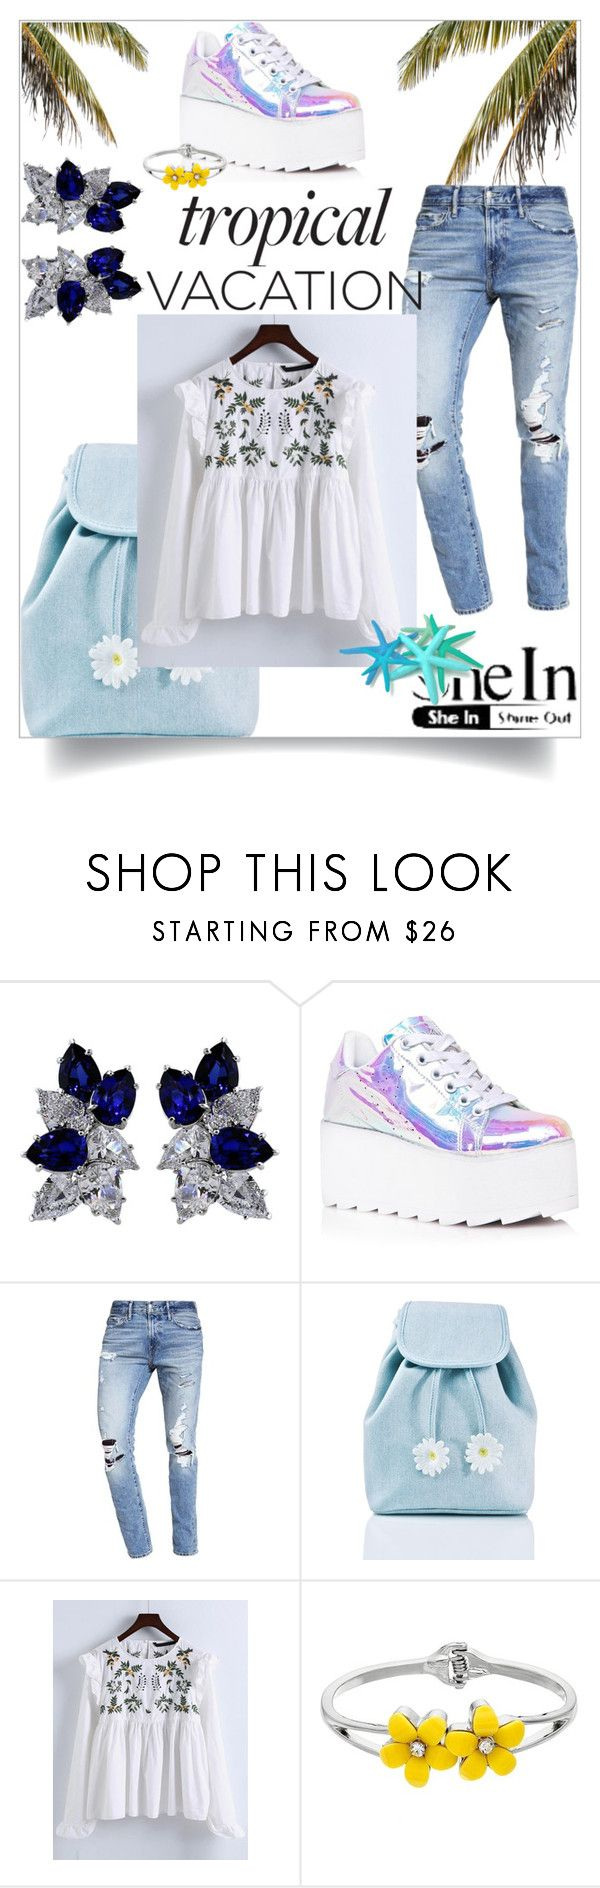 """""""Untitled #113"""" by jasemin-ii ❤ liked on Polyvore featuring Fantasia, Y.R.U., Abercrombie & Fitch, Sugarbaby and WithChic"""